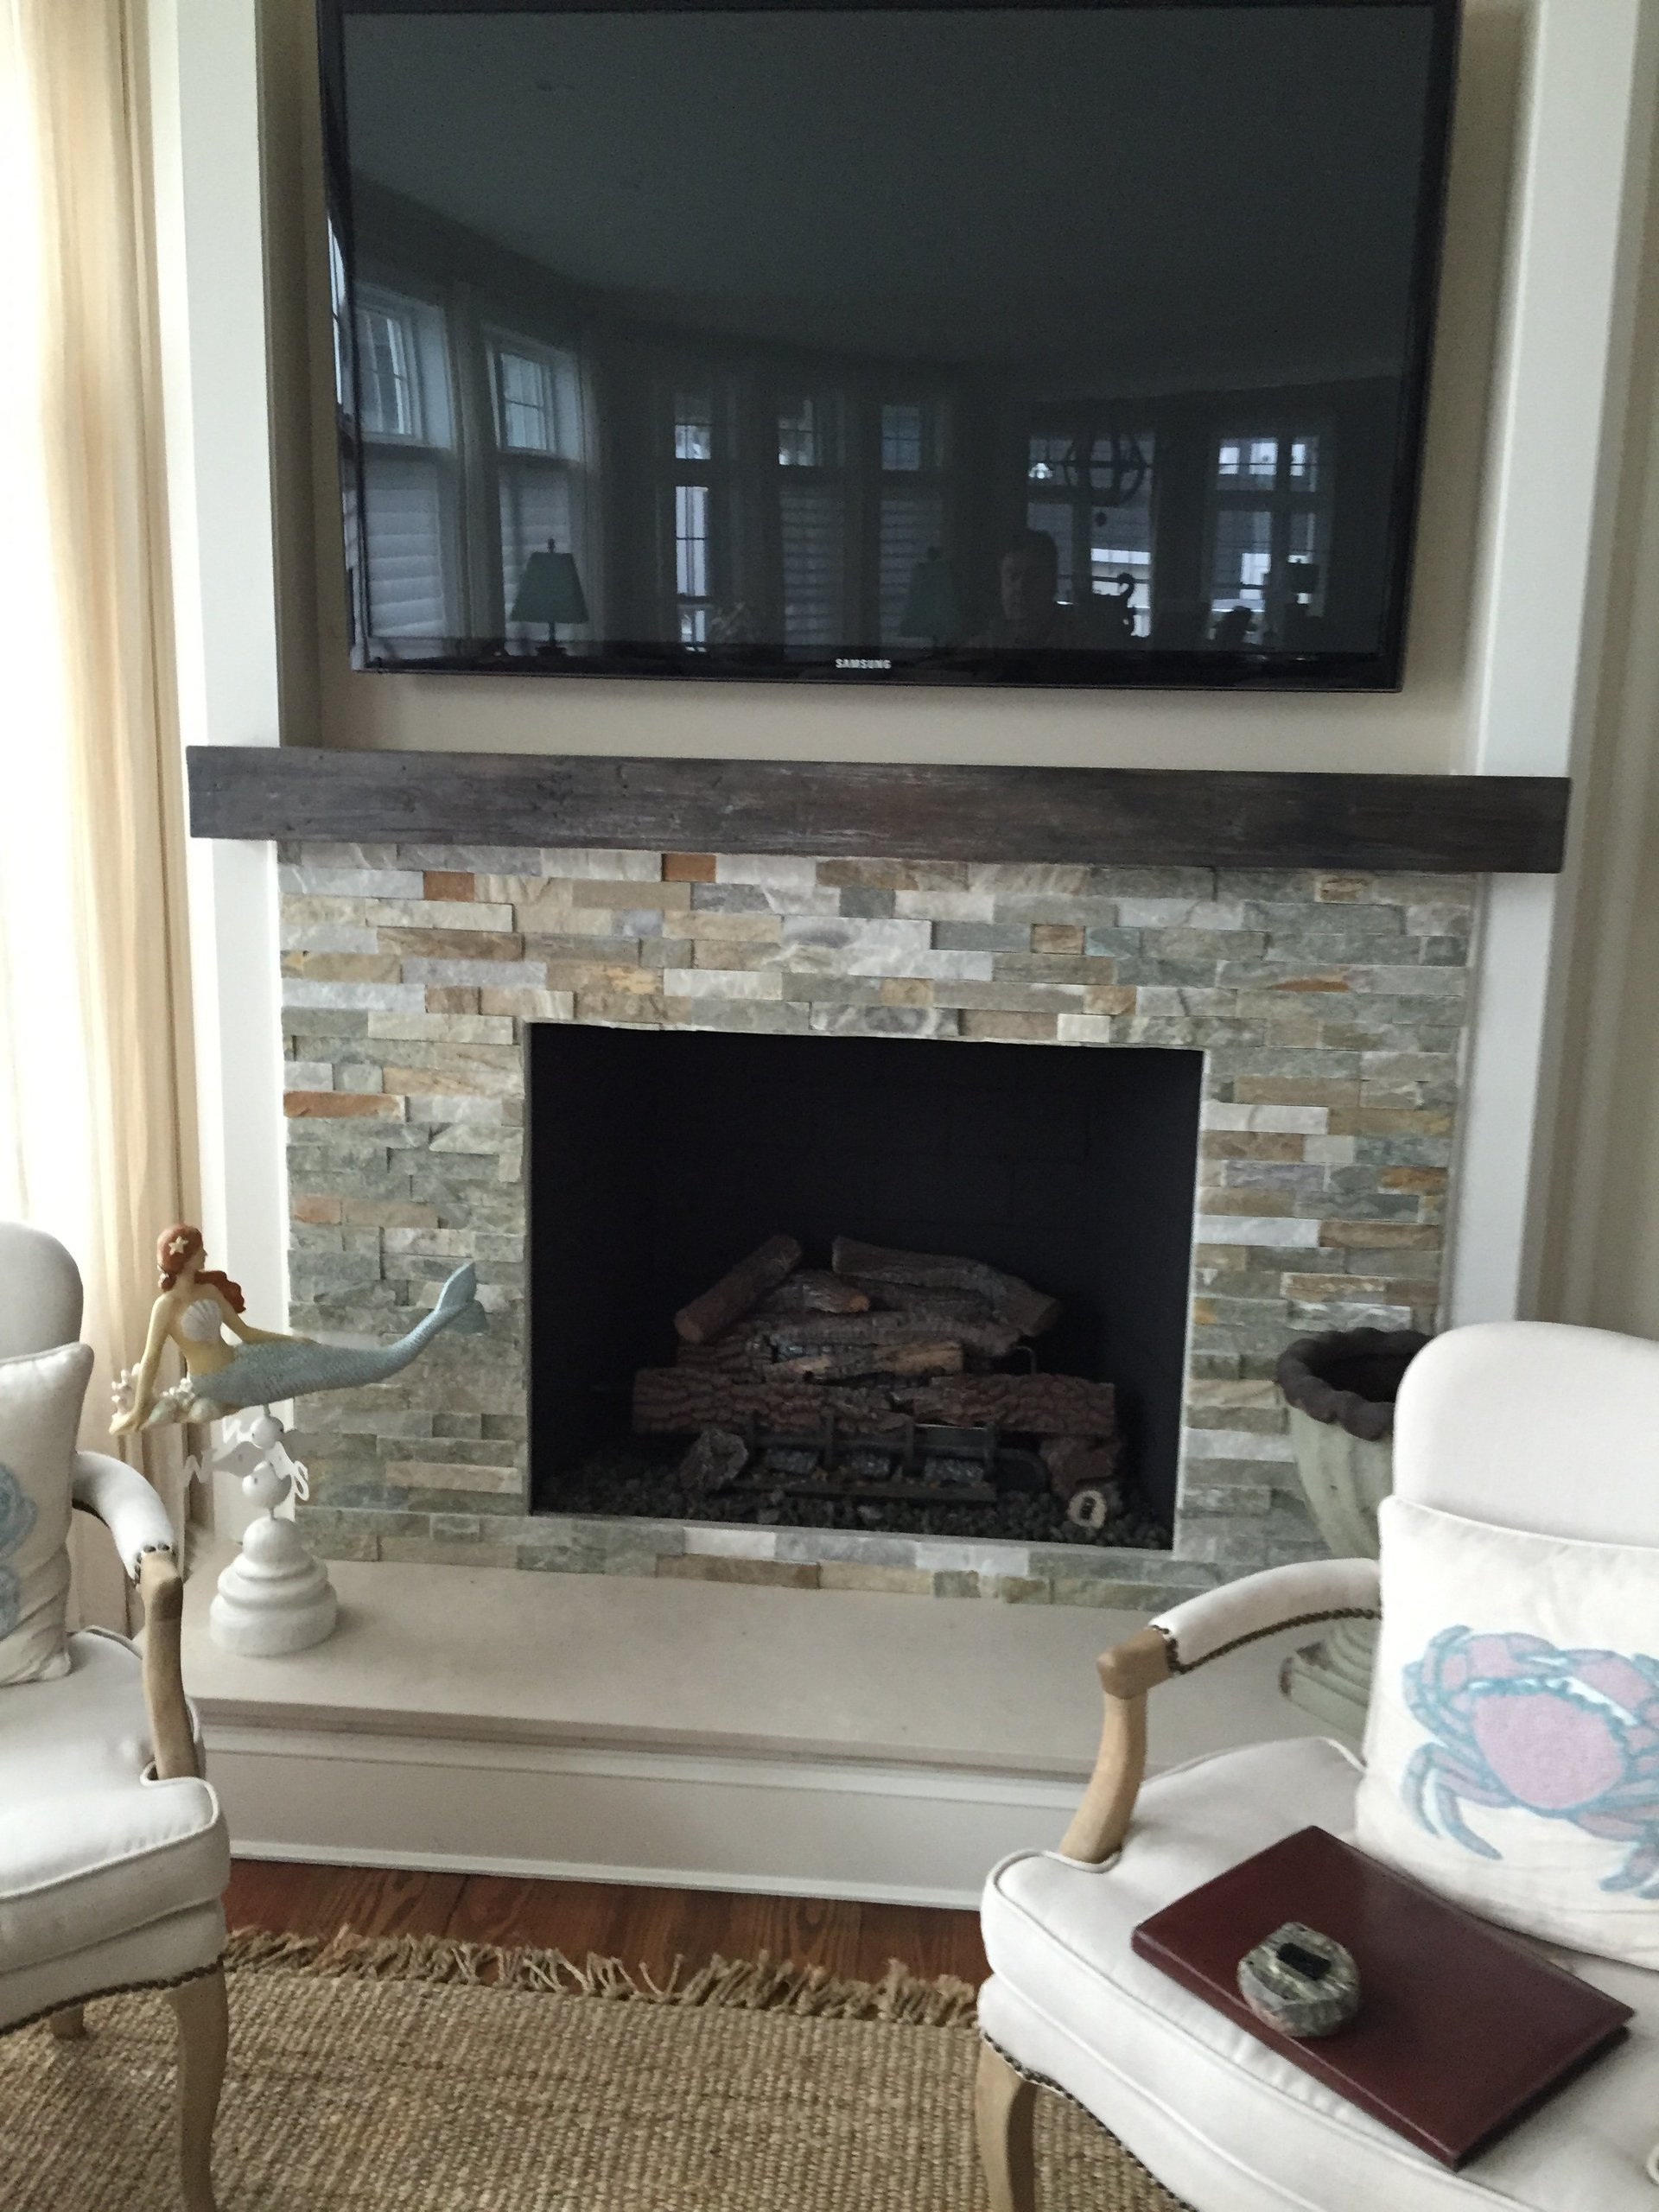 fireplace boulevard salon crop foyers quality gas opt les burning en propane stoves vaudreuil barbecues po et wood futuristes